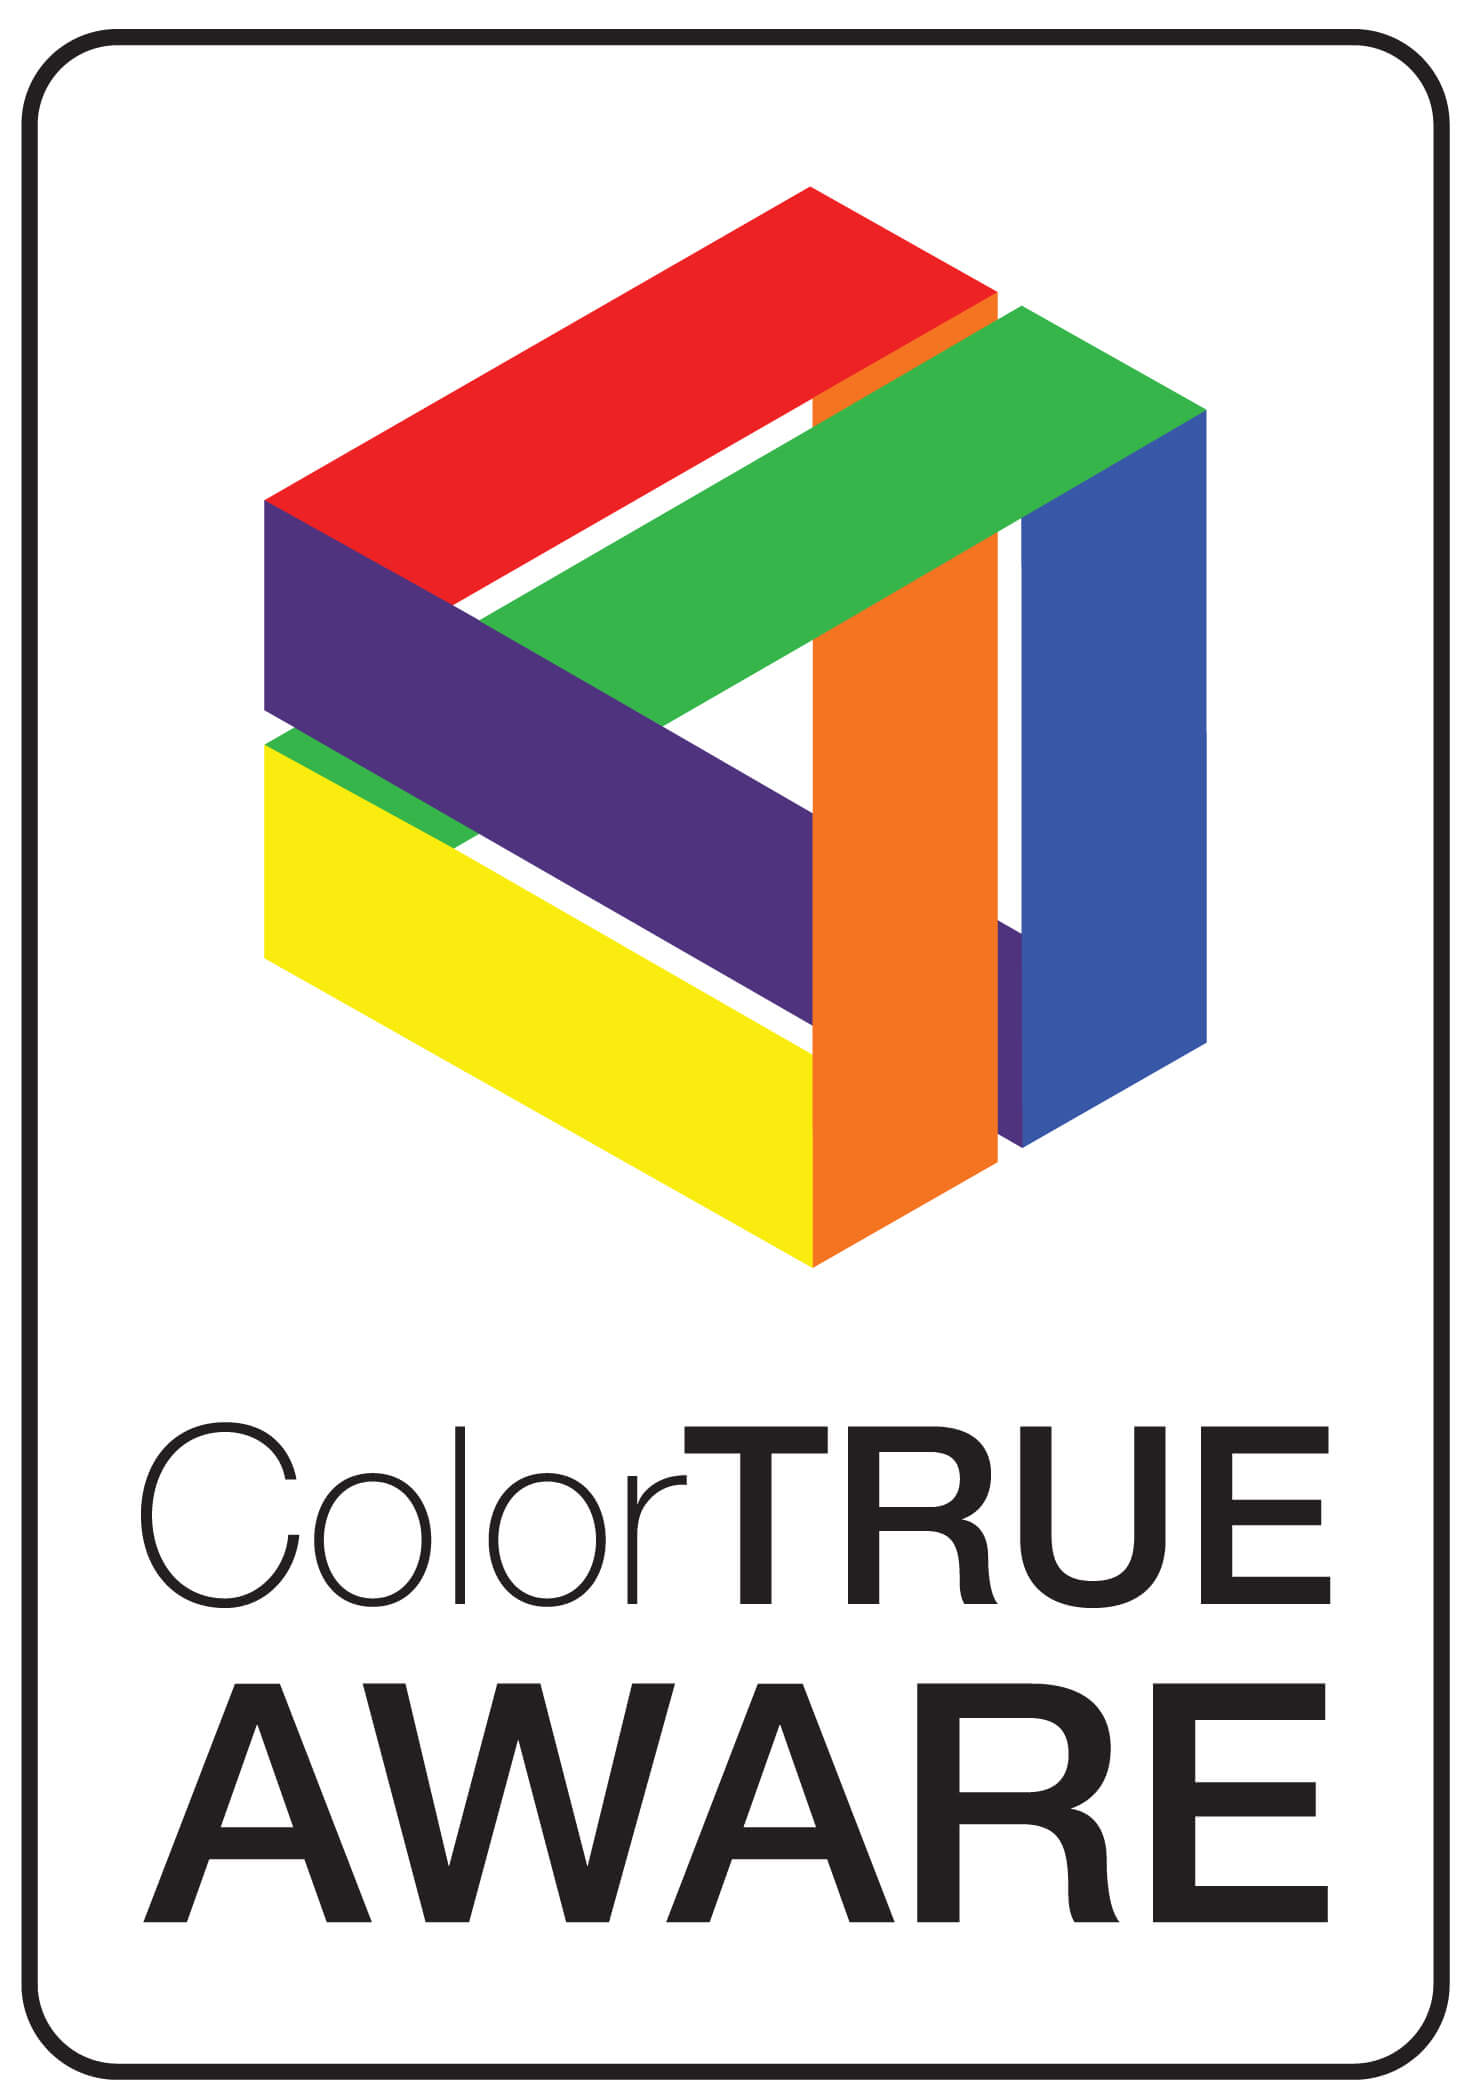 colortrue-aware-v-box.jpg